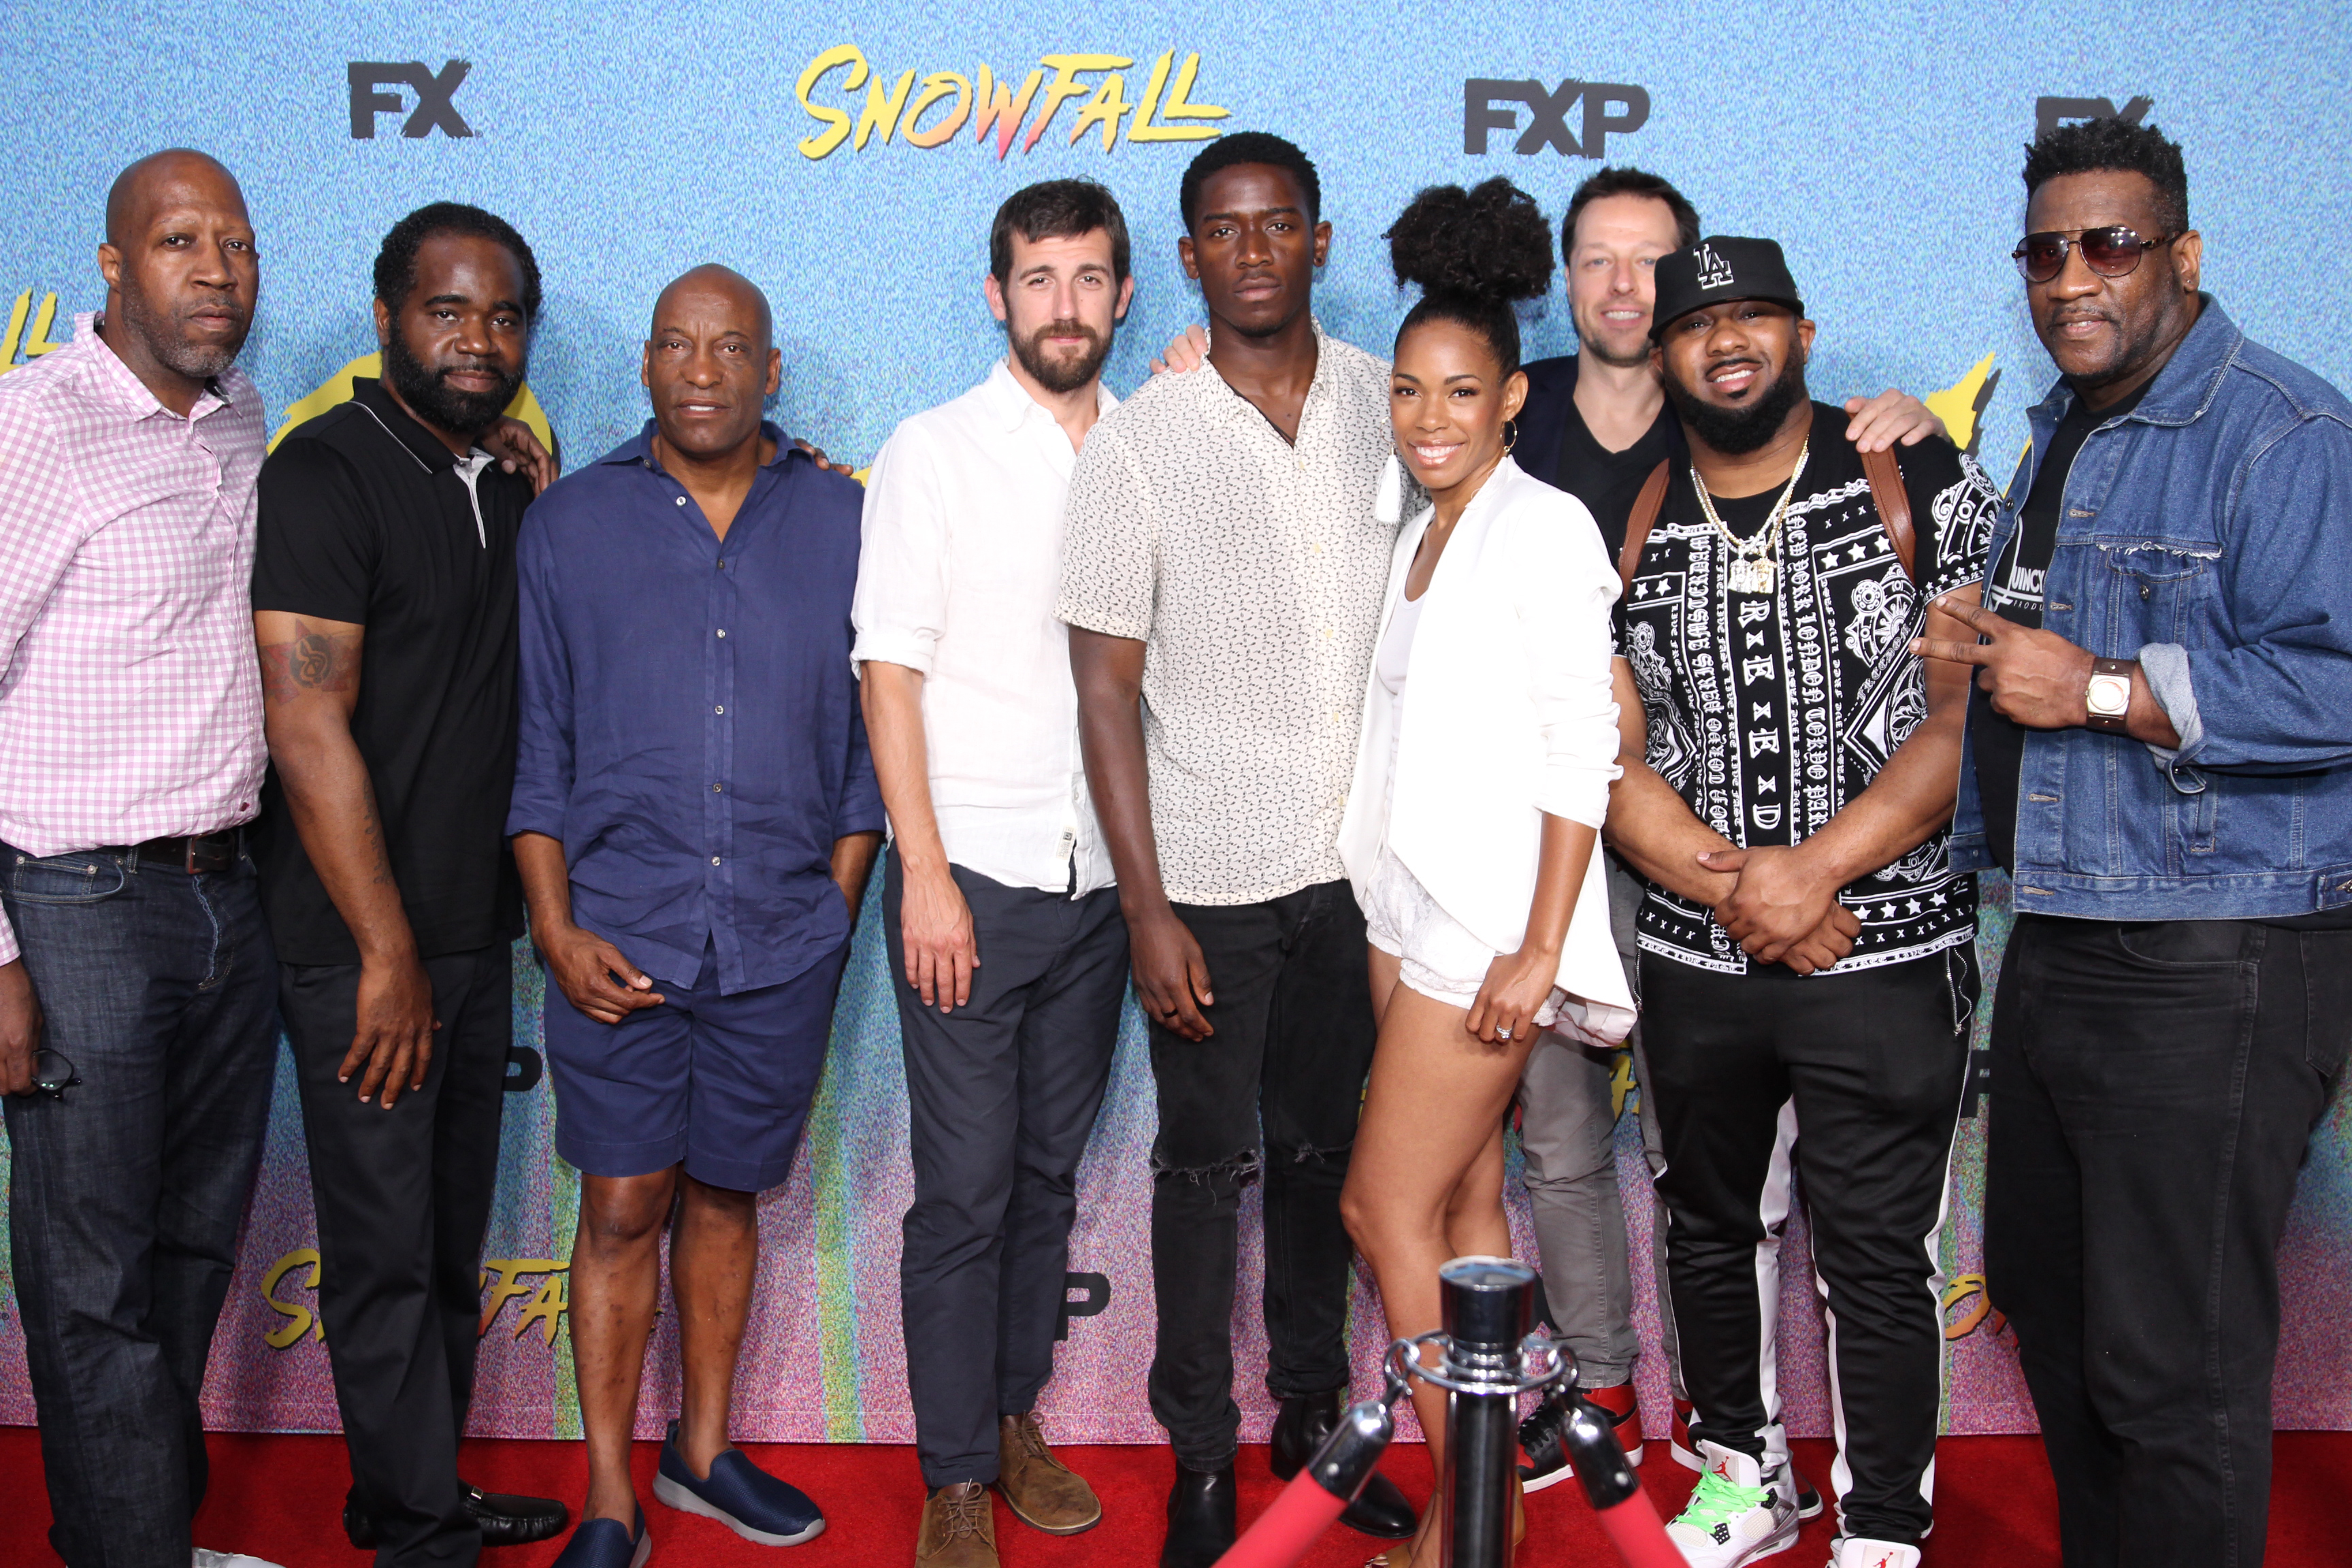 FX Premieres Season 2 'Snowfall' Episode in Chicago With